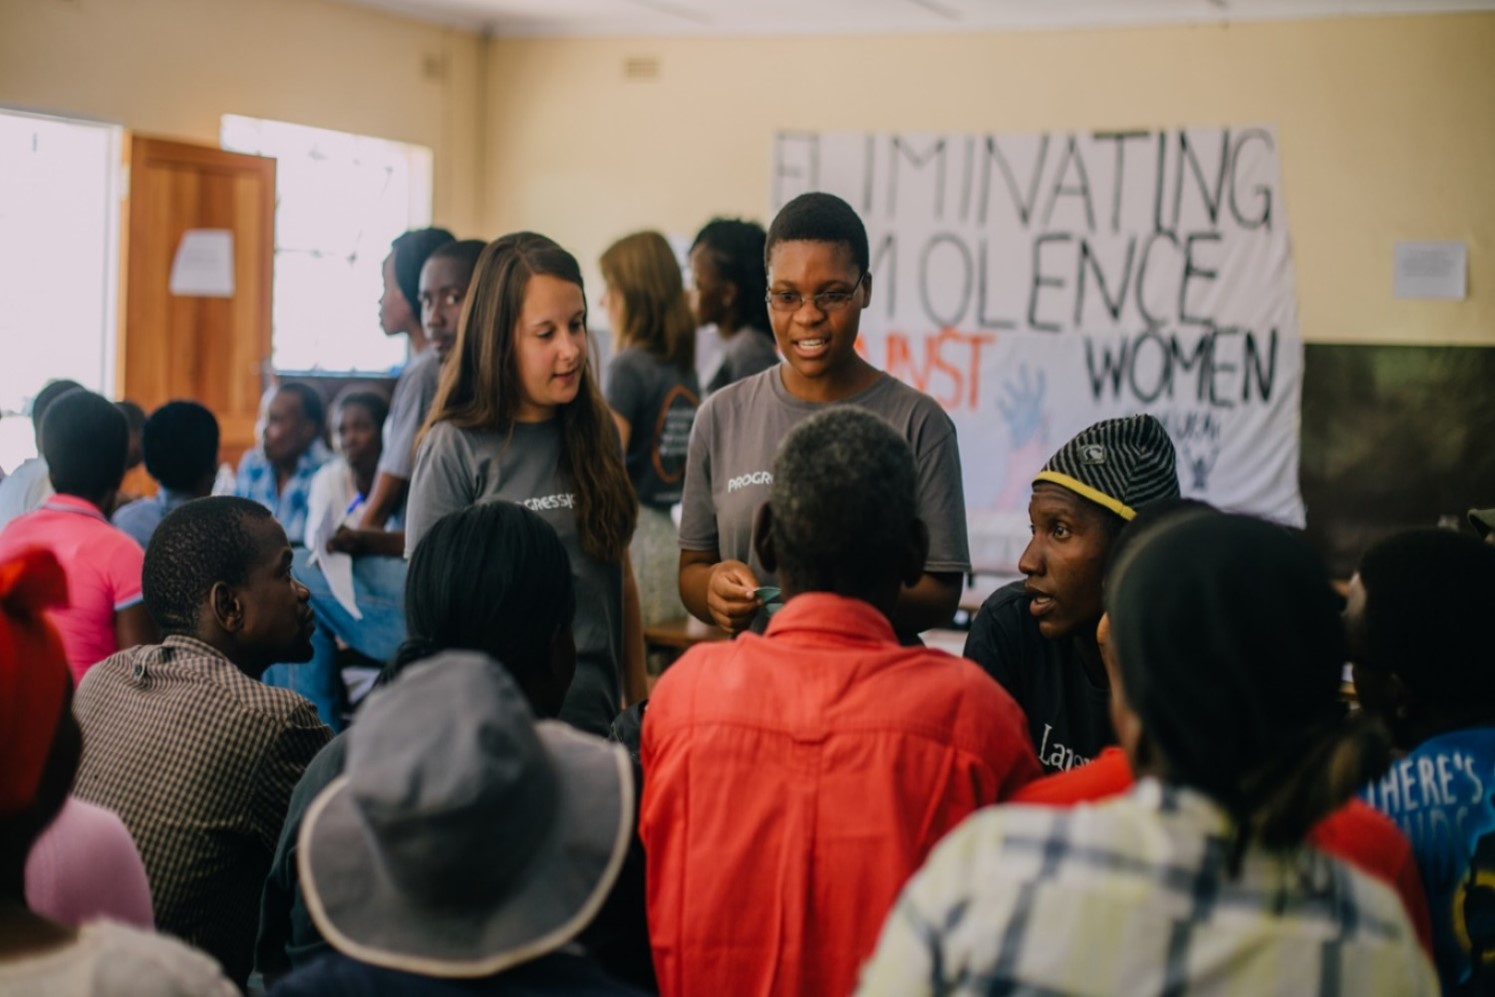 Maria and her ICS volunteer team, running a workshop on ending violence against women